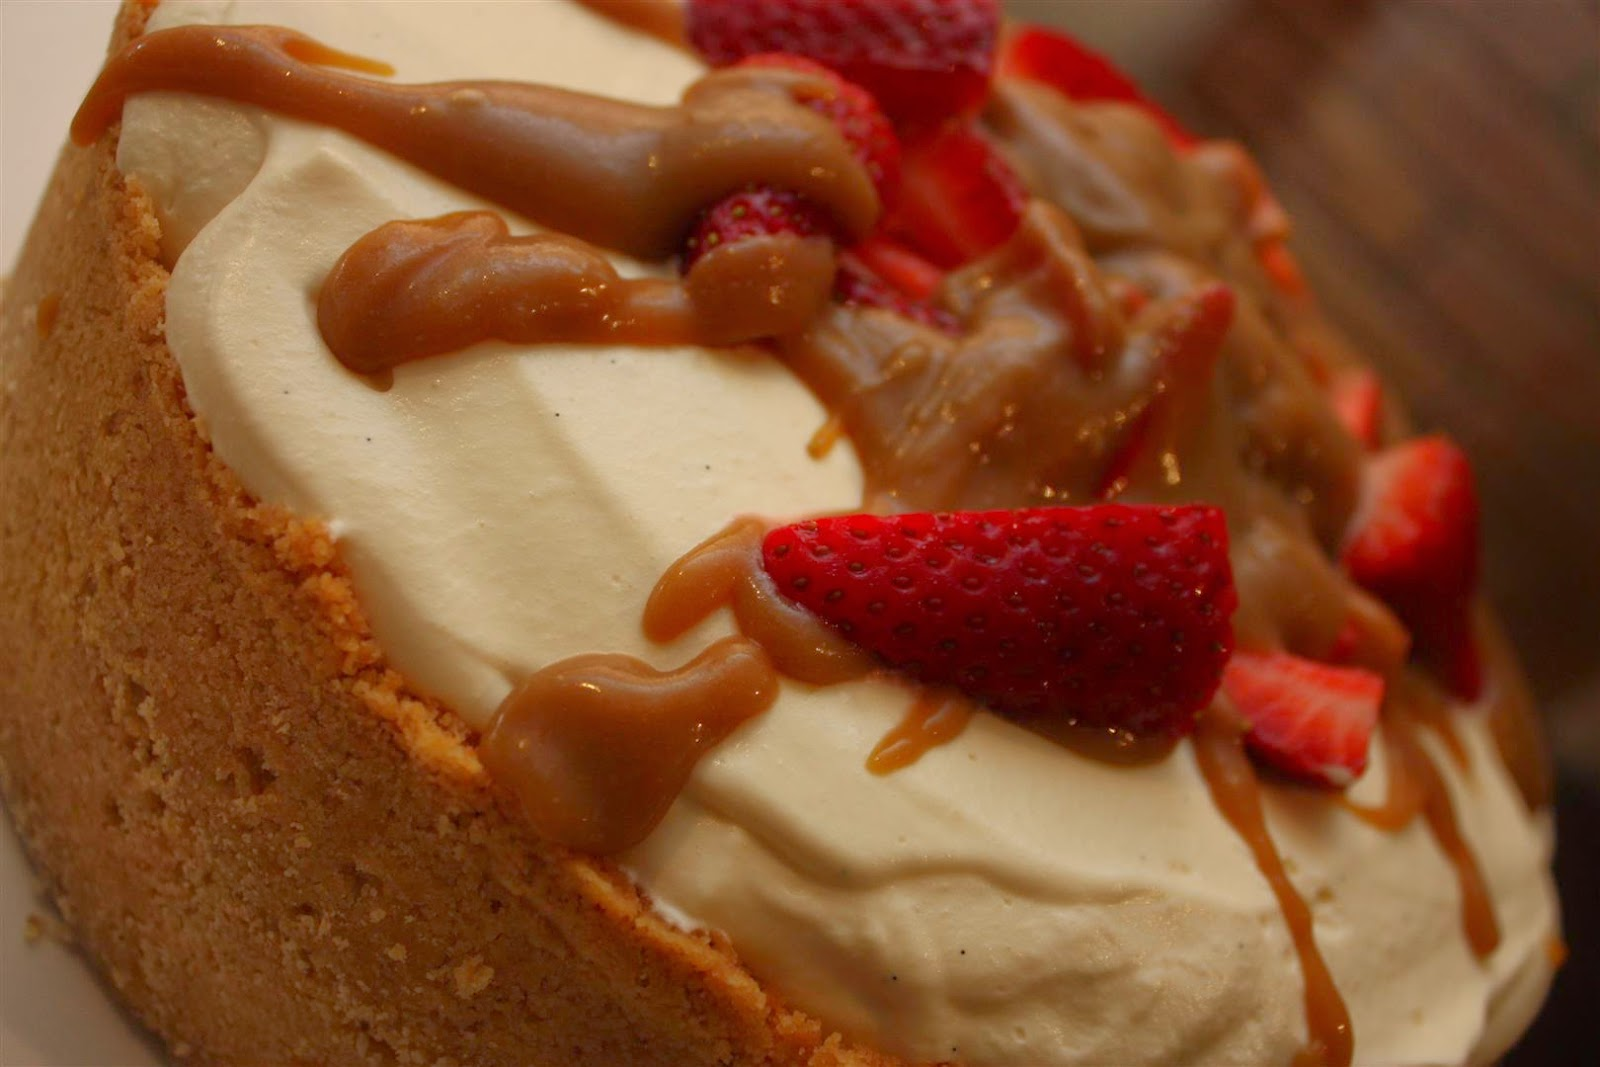 The Everyday Baker: Salted caramel and vanilla baked cheesecake